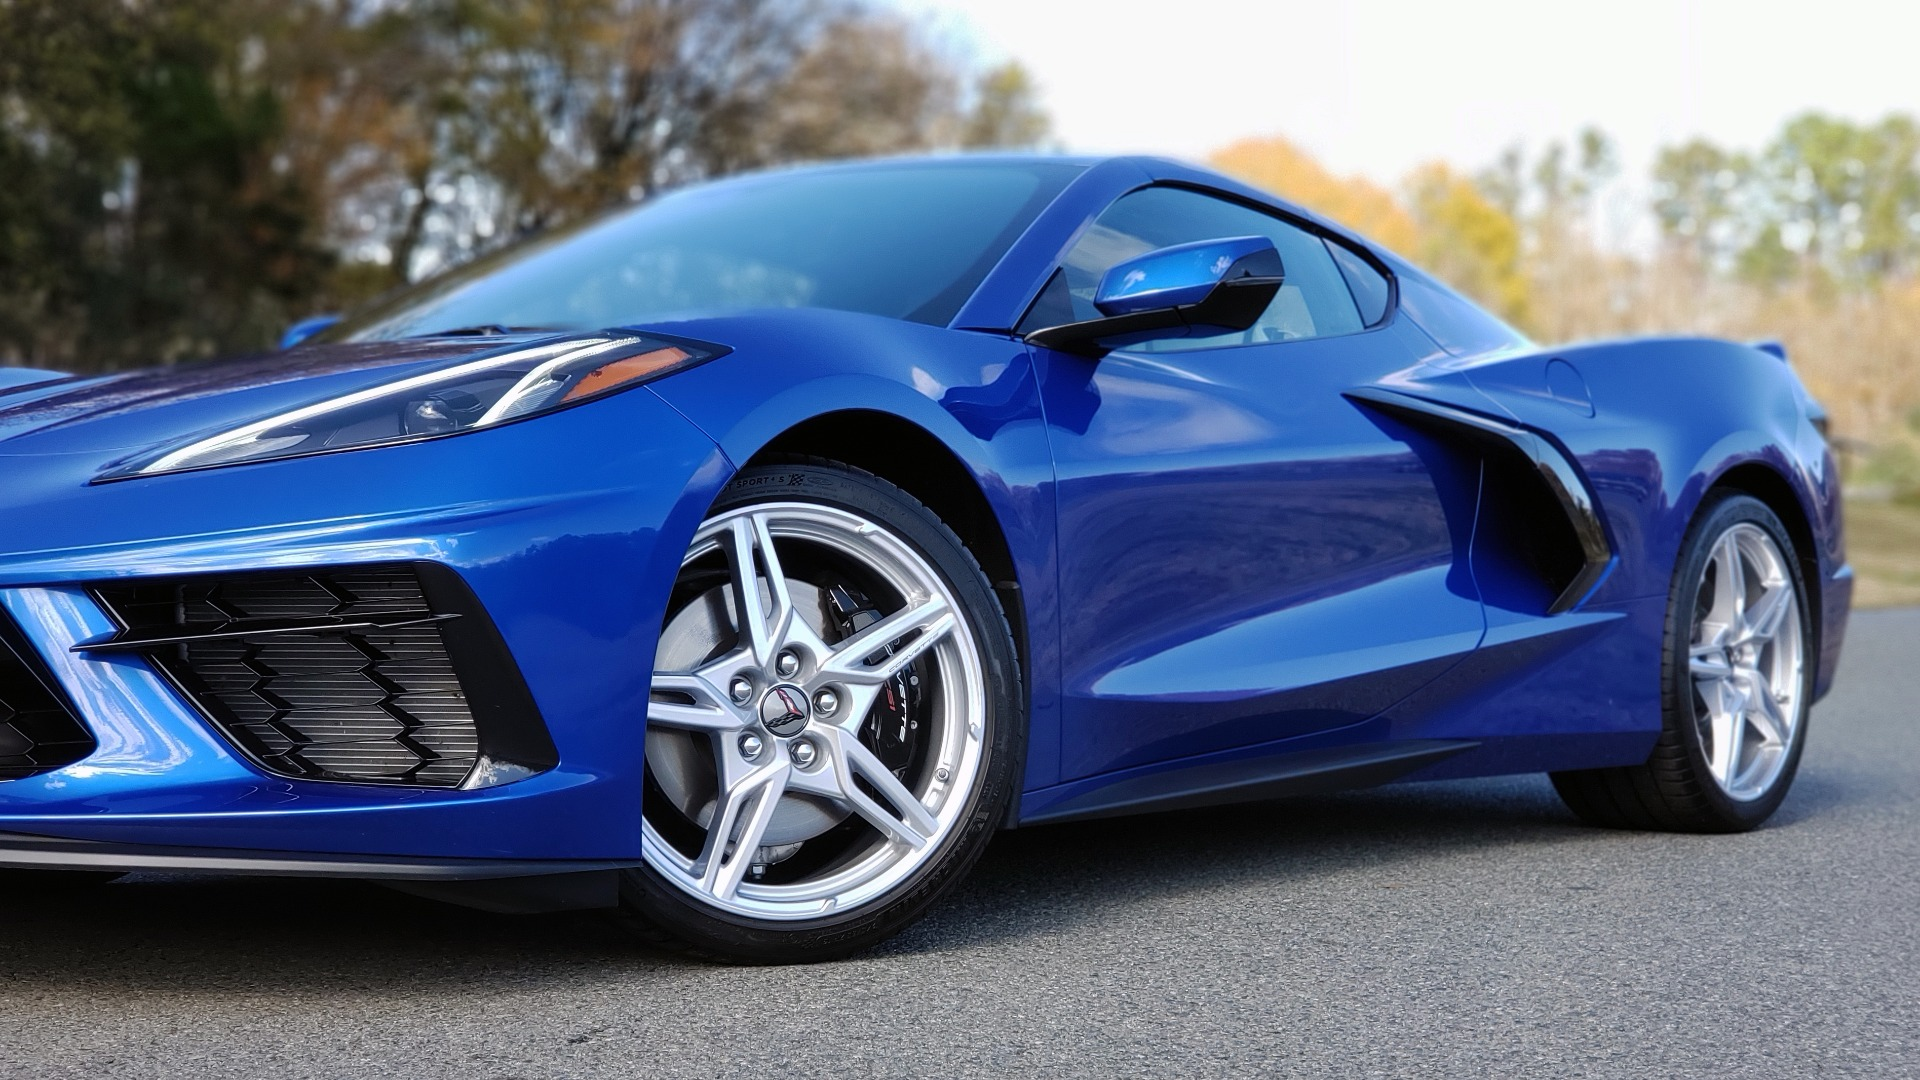 Used 2020 Chevrolet C8 CORVETTE STINGRAY 2LT COUPE / NAV / HUD / BOSE / GT2 SEATS / FRONT LIFT / REARVIEW for sale $98,999 at Formula Imports in Charlotte NC 28227 3